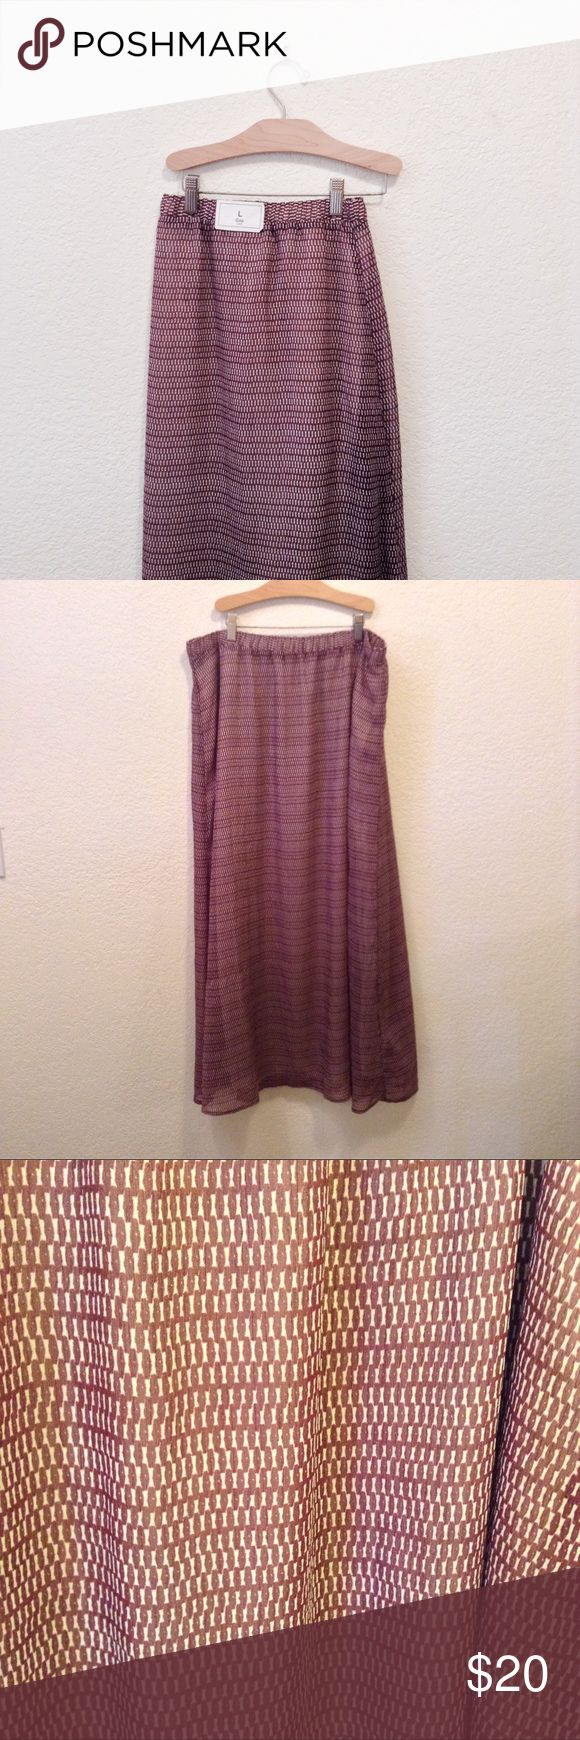 GAP Ikat Chiffon Maxi Skirt NWT, never worn. This skirt features a burgundy and cream Ikat pattern on a chiffon outer layer, the inside is fully lined. Elastic waist band. Questions and offers are welcome GAP Skirts Maxi